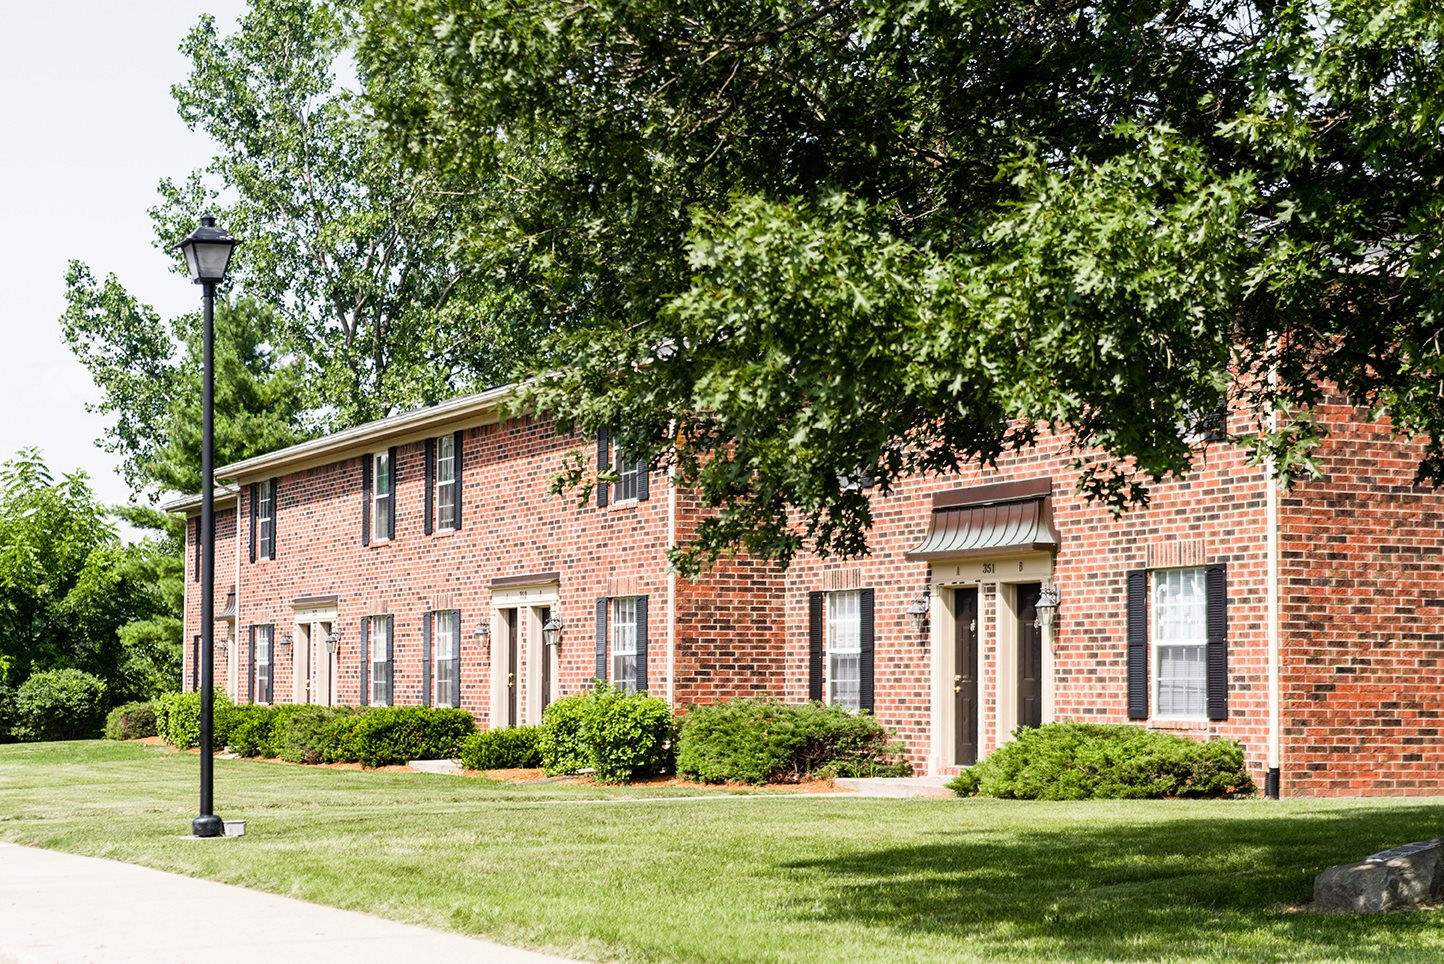 CARRIAGE HOUSE APARTMENTS OF KENDALLVILLE